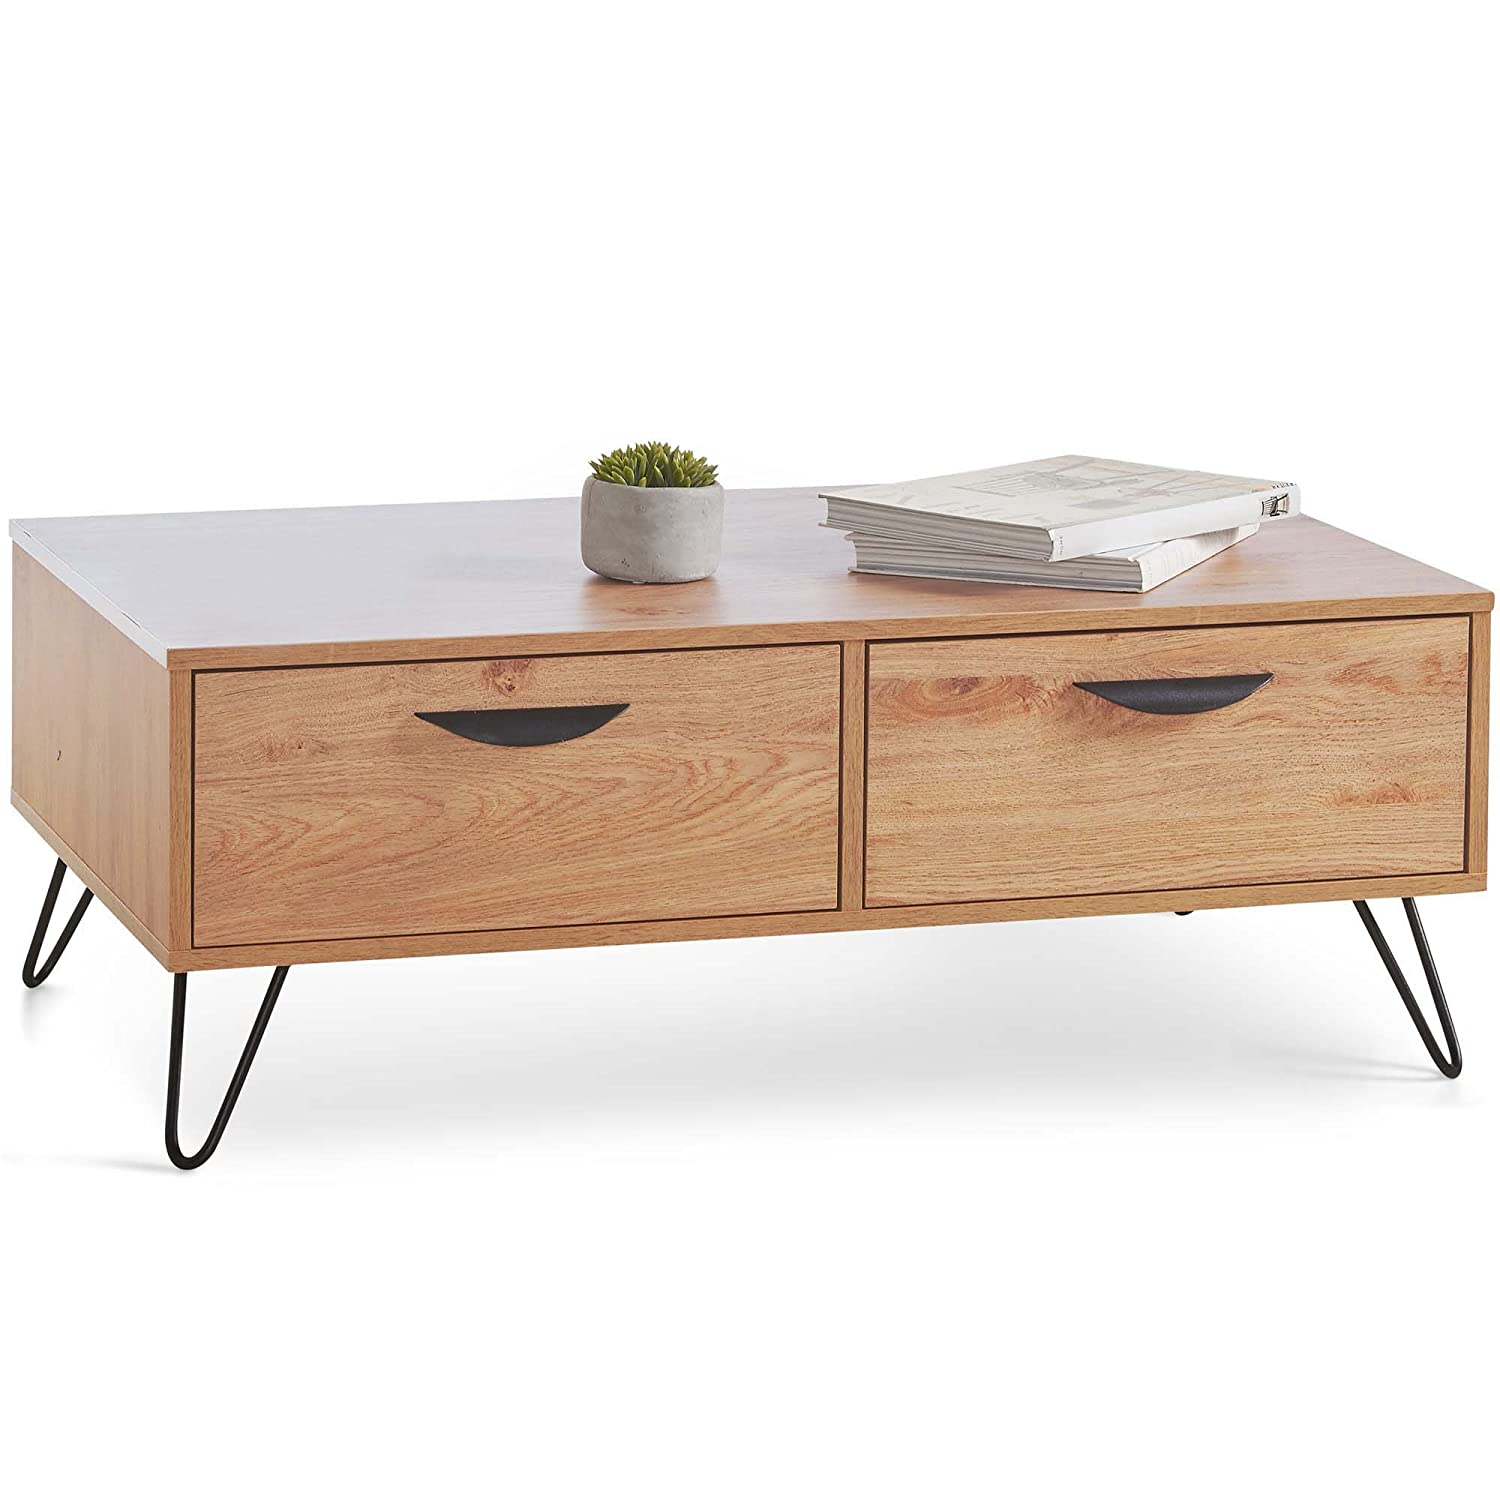 VonHaus Capri Coffee Table with 2 Soft Close Drawers - Oak effect finish with Black Hairpin Legs Retro Style - Vintage Scandi Lounge, Dining or Living Room Furniture